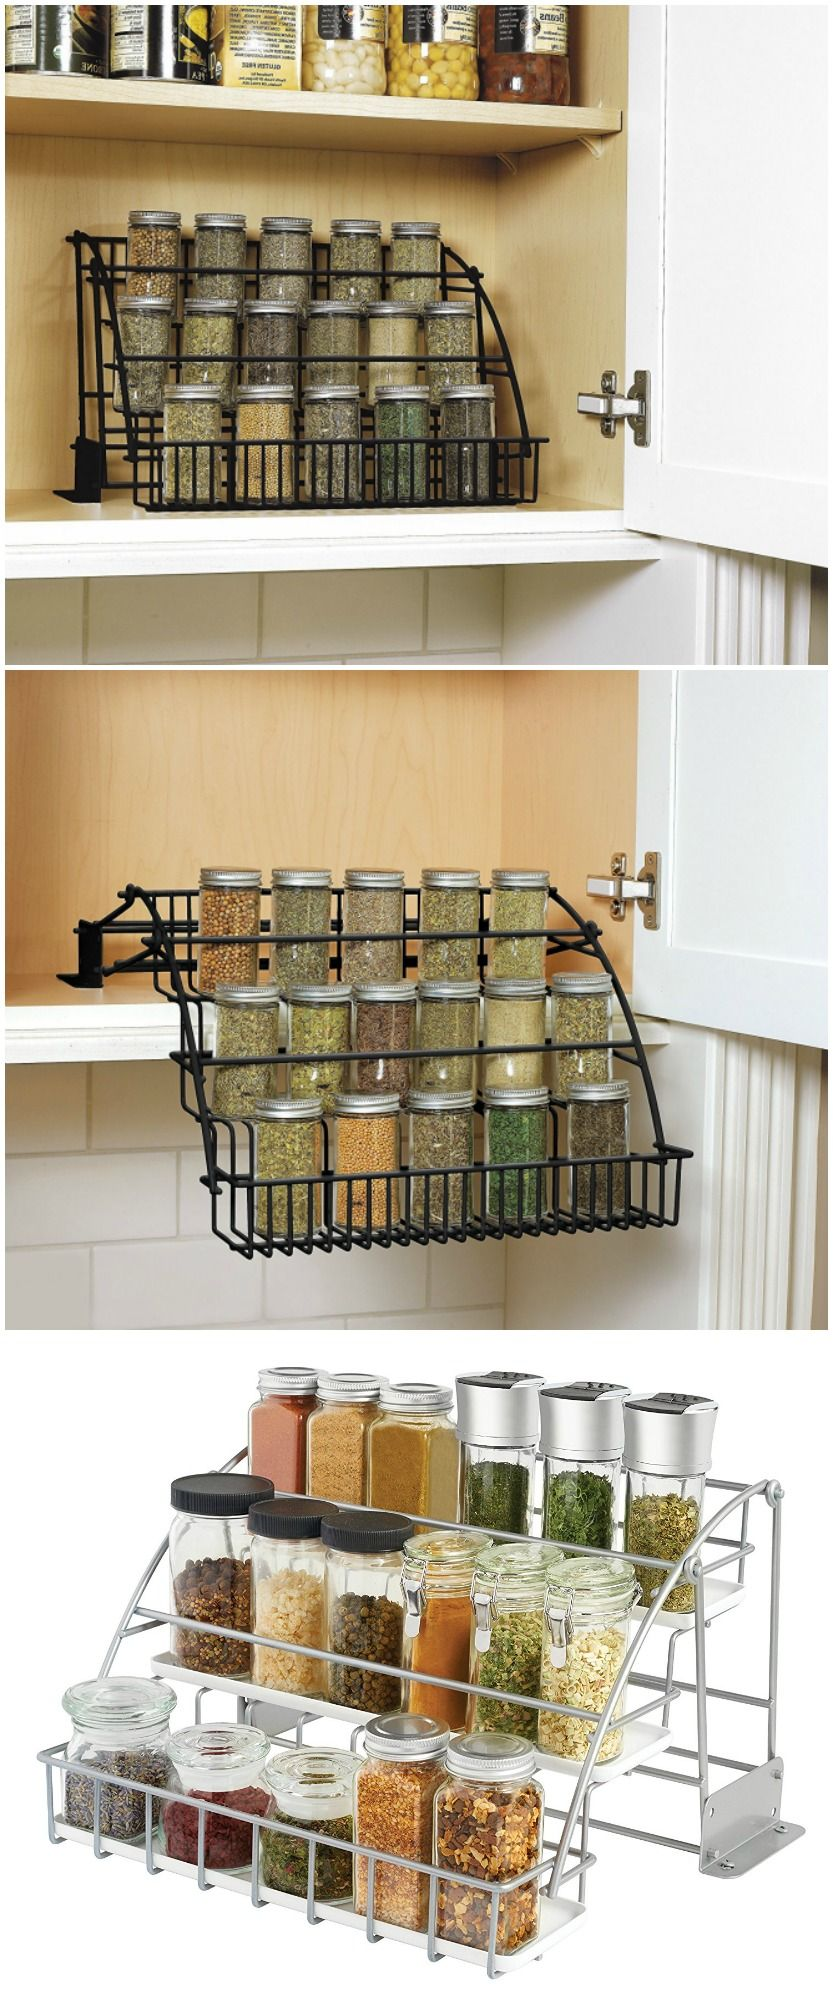 You Can Get This Spice Rack Anywhere Might Be Nicer Than Throwing Your Spices In A Cupboard And Taking Kitchen Wall Storage Diy Cupboards Diy Kitchen Cabinets